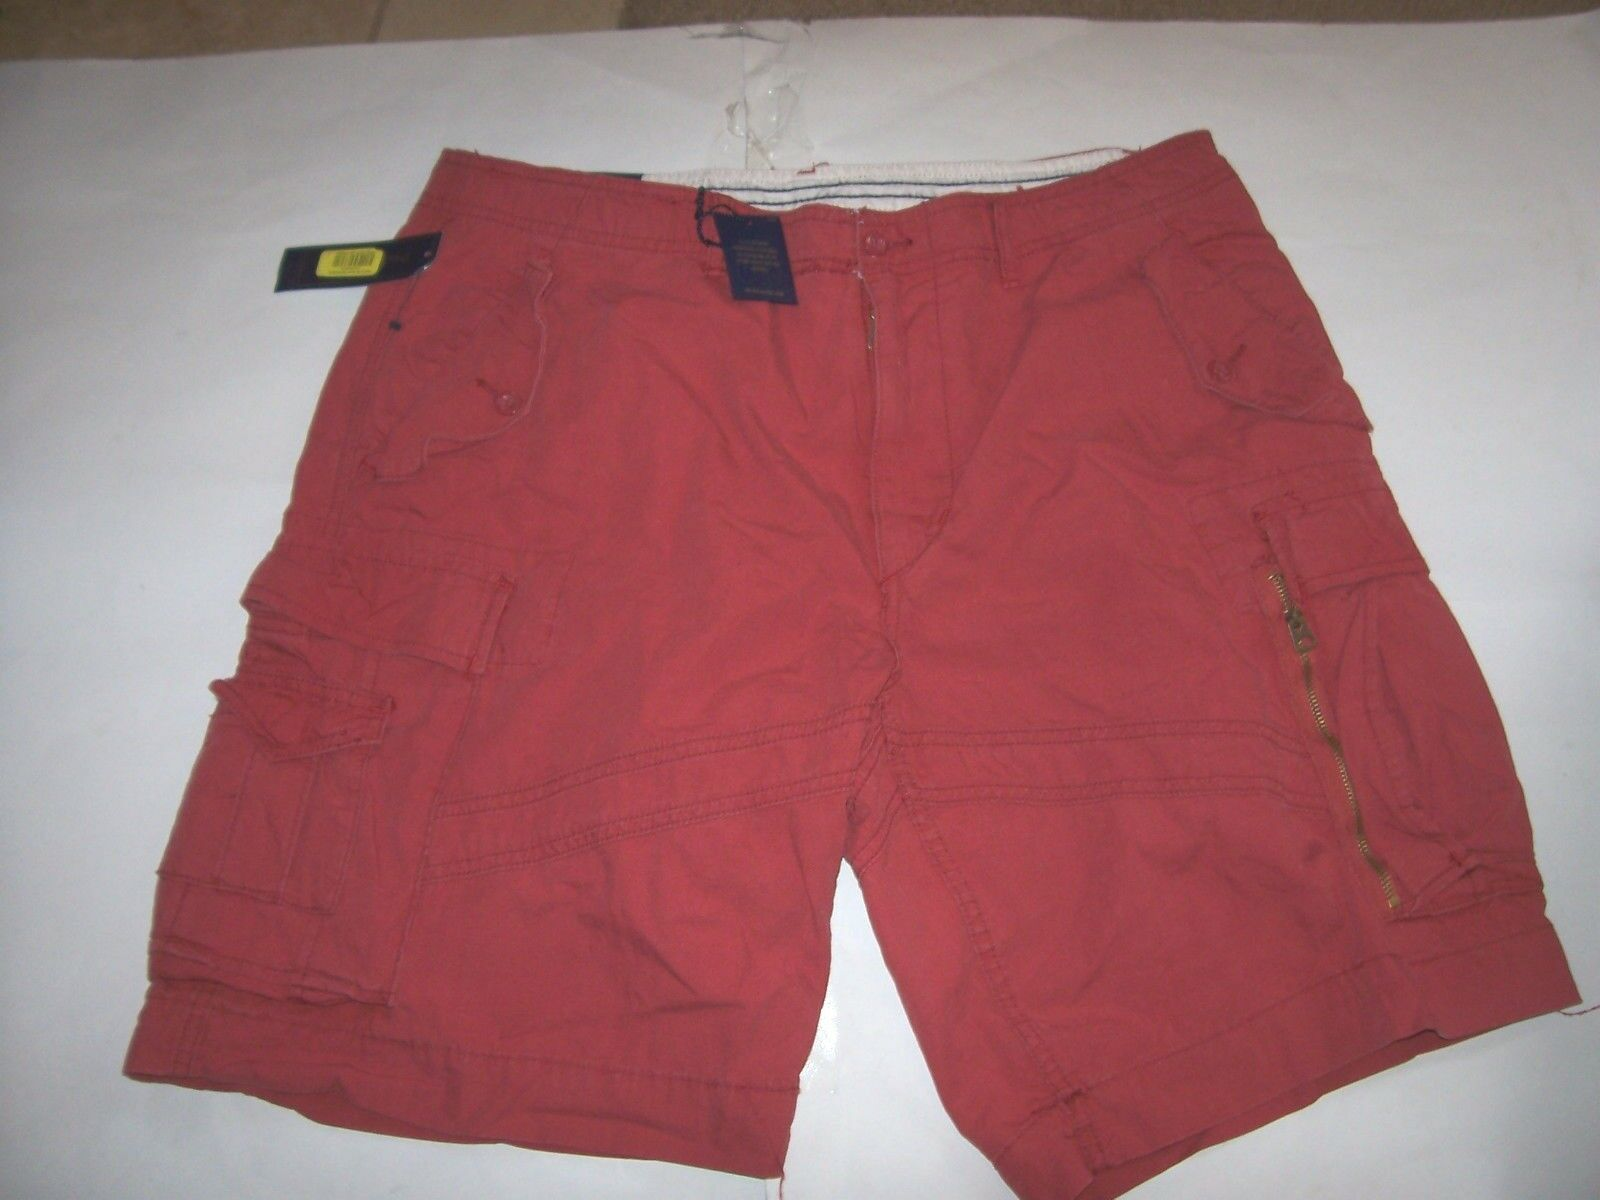 NEW Polo Ralph Lauren Santa Fe Poplin Utility Fatigue CARGO shorts red sz 40